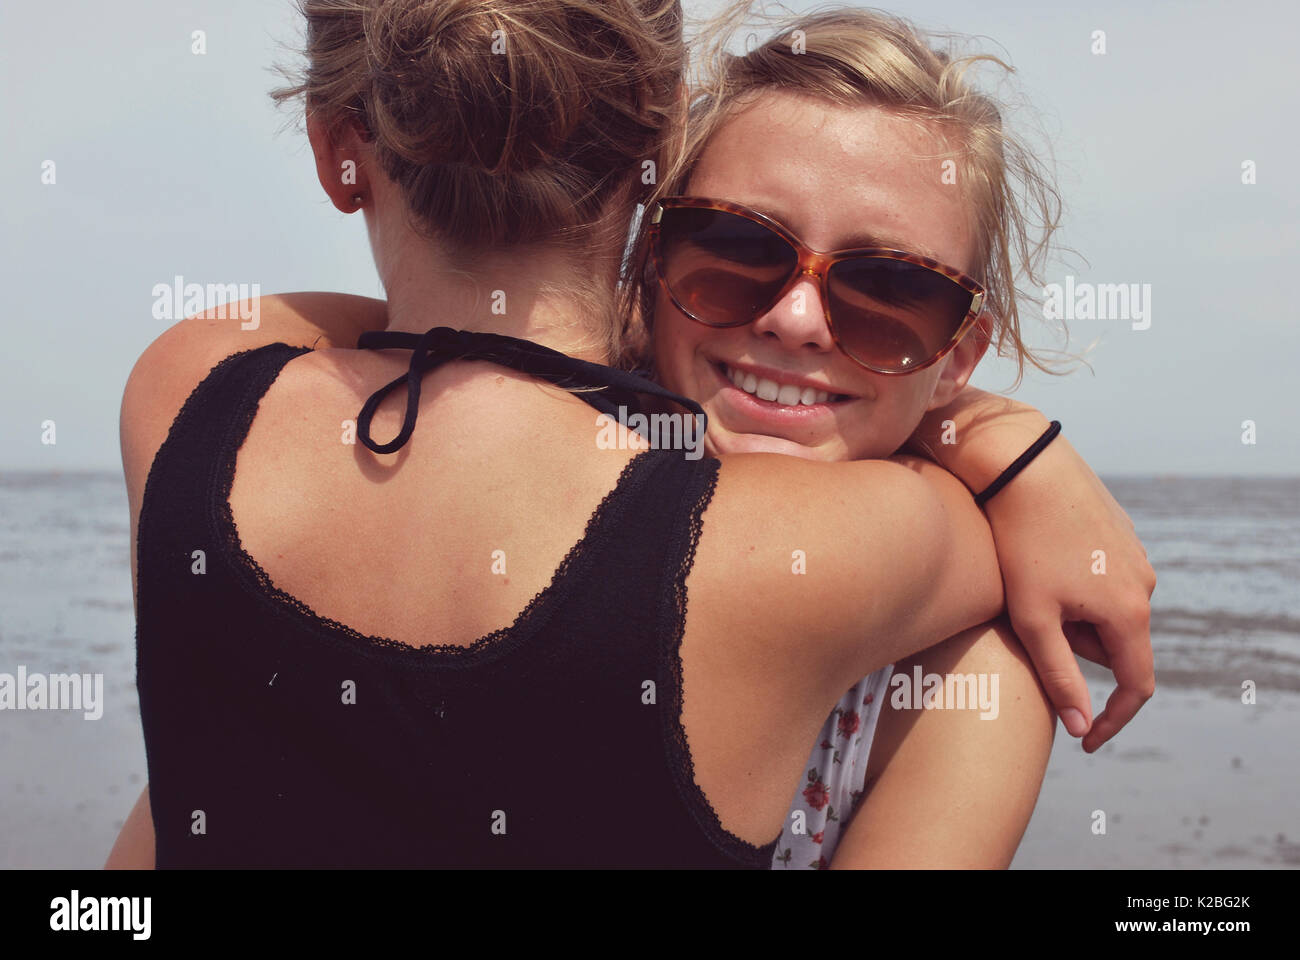 Two friends hugging - Stock Image